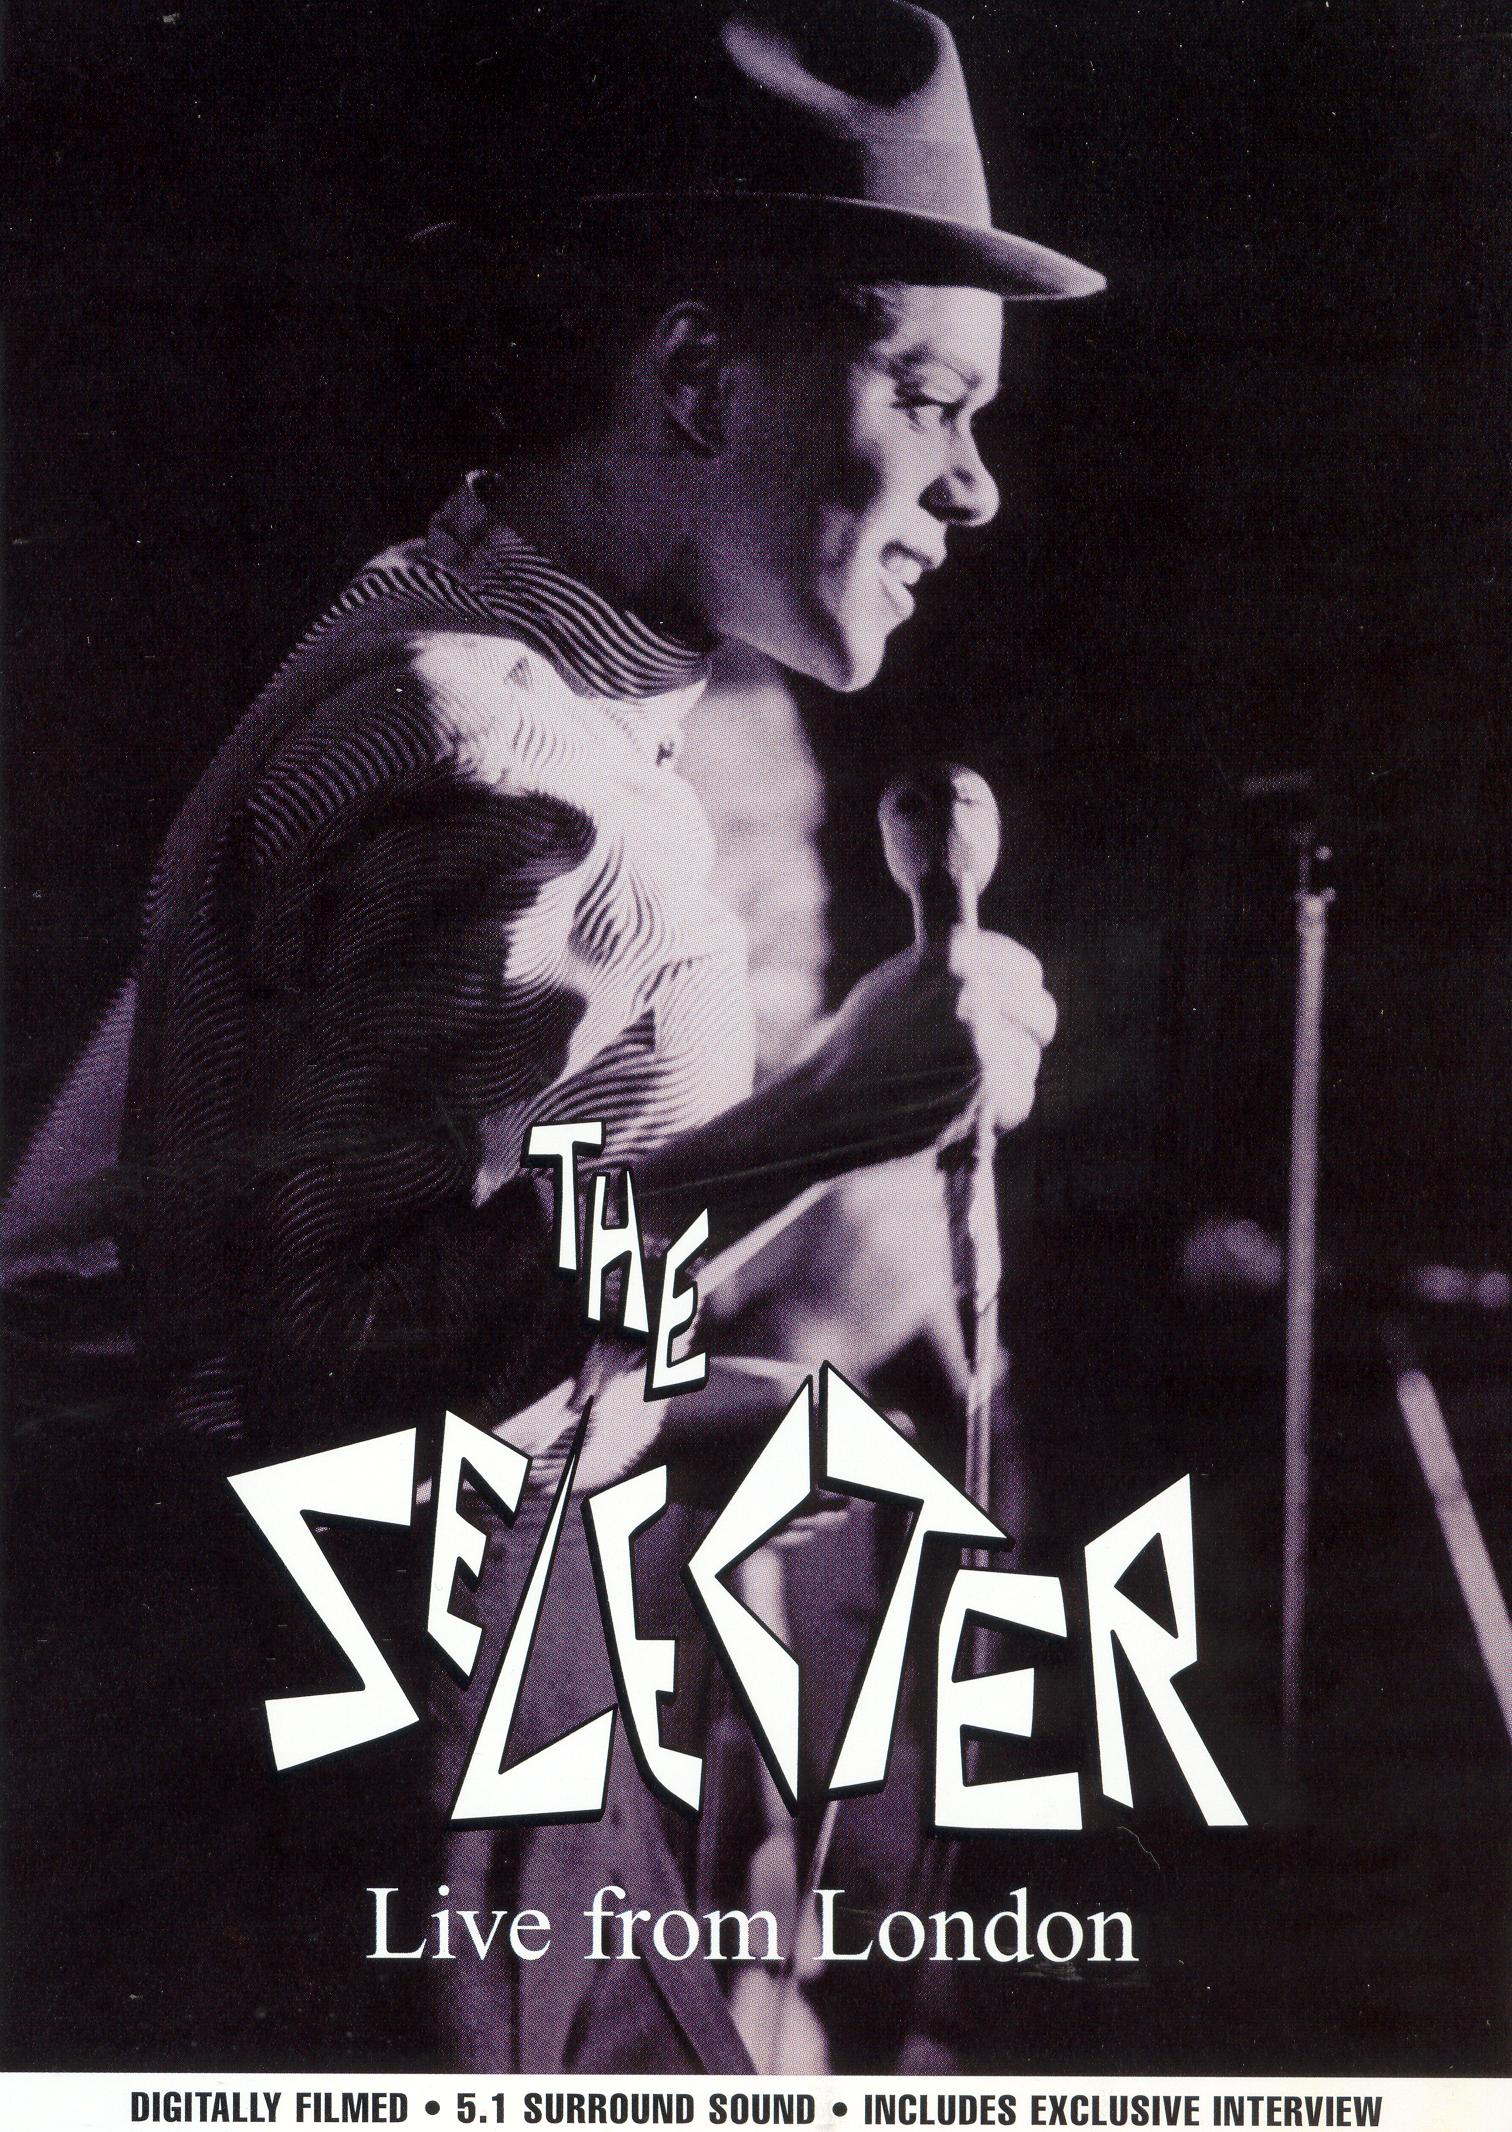 The Selecter: Live From London